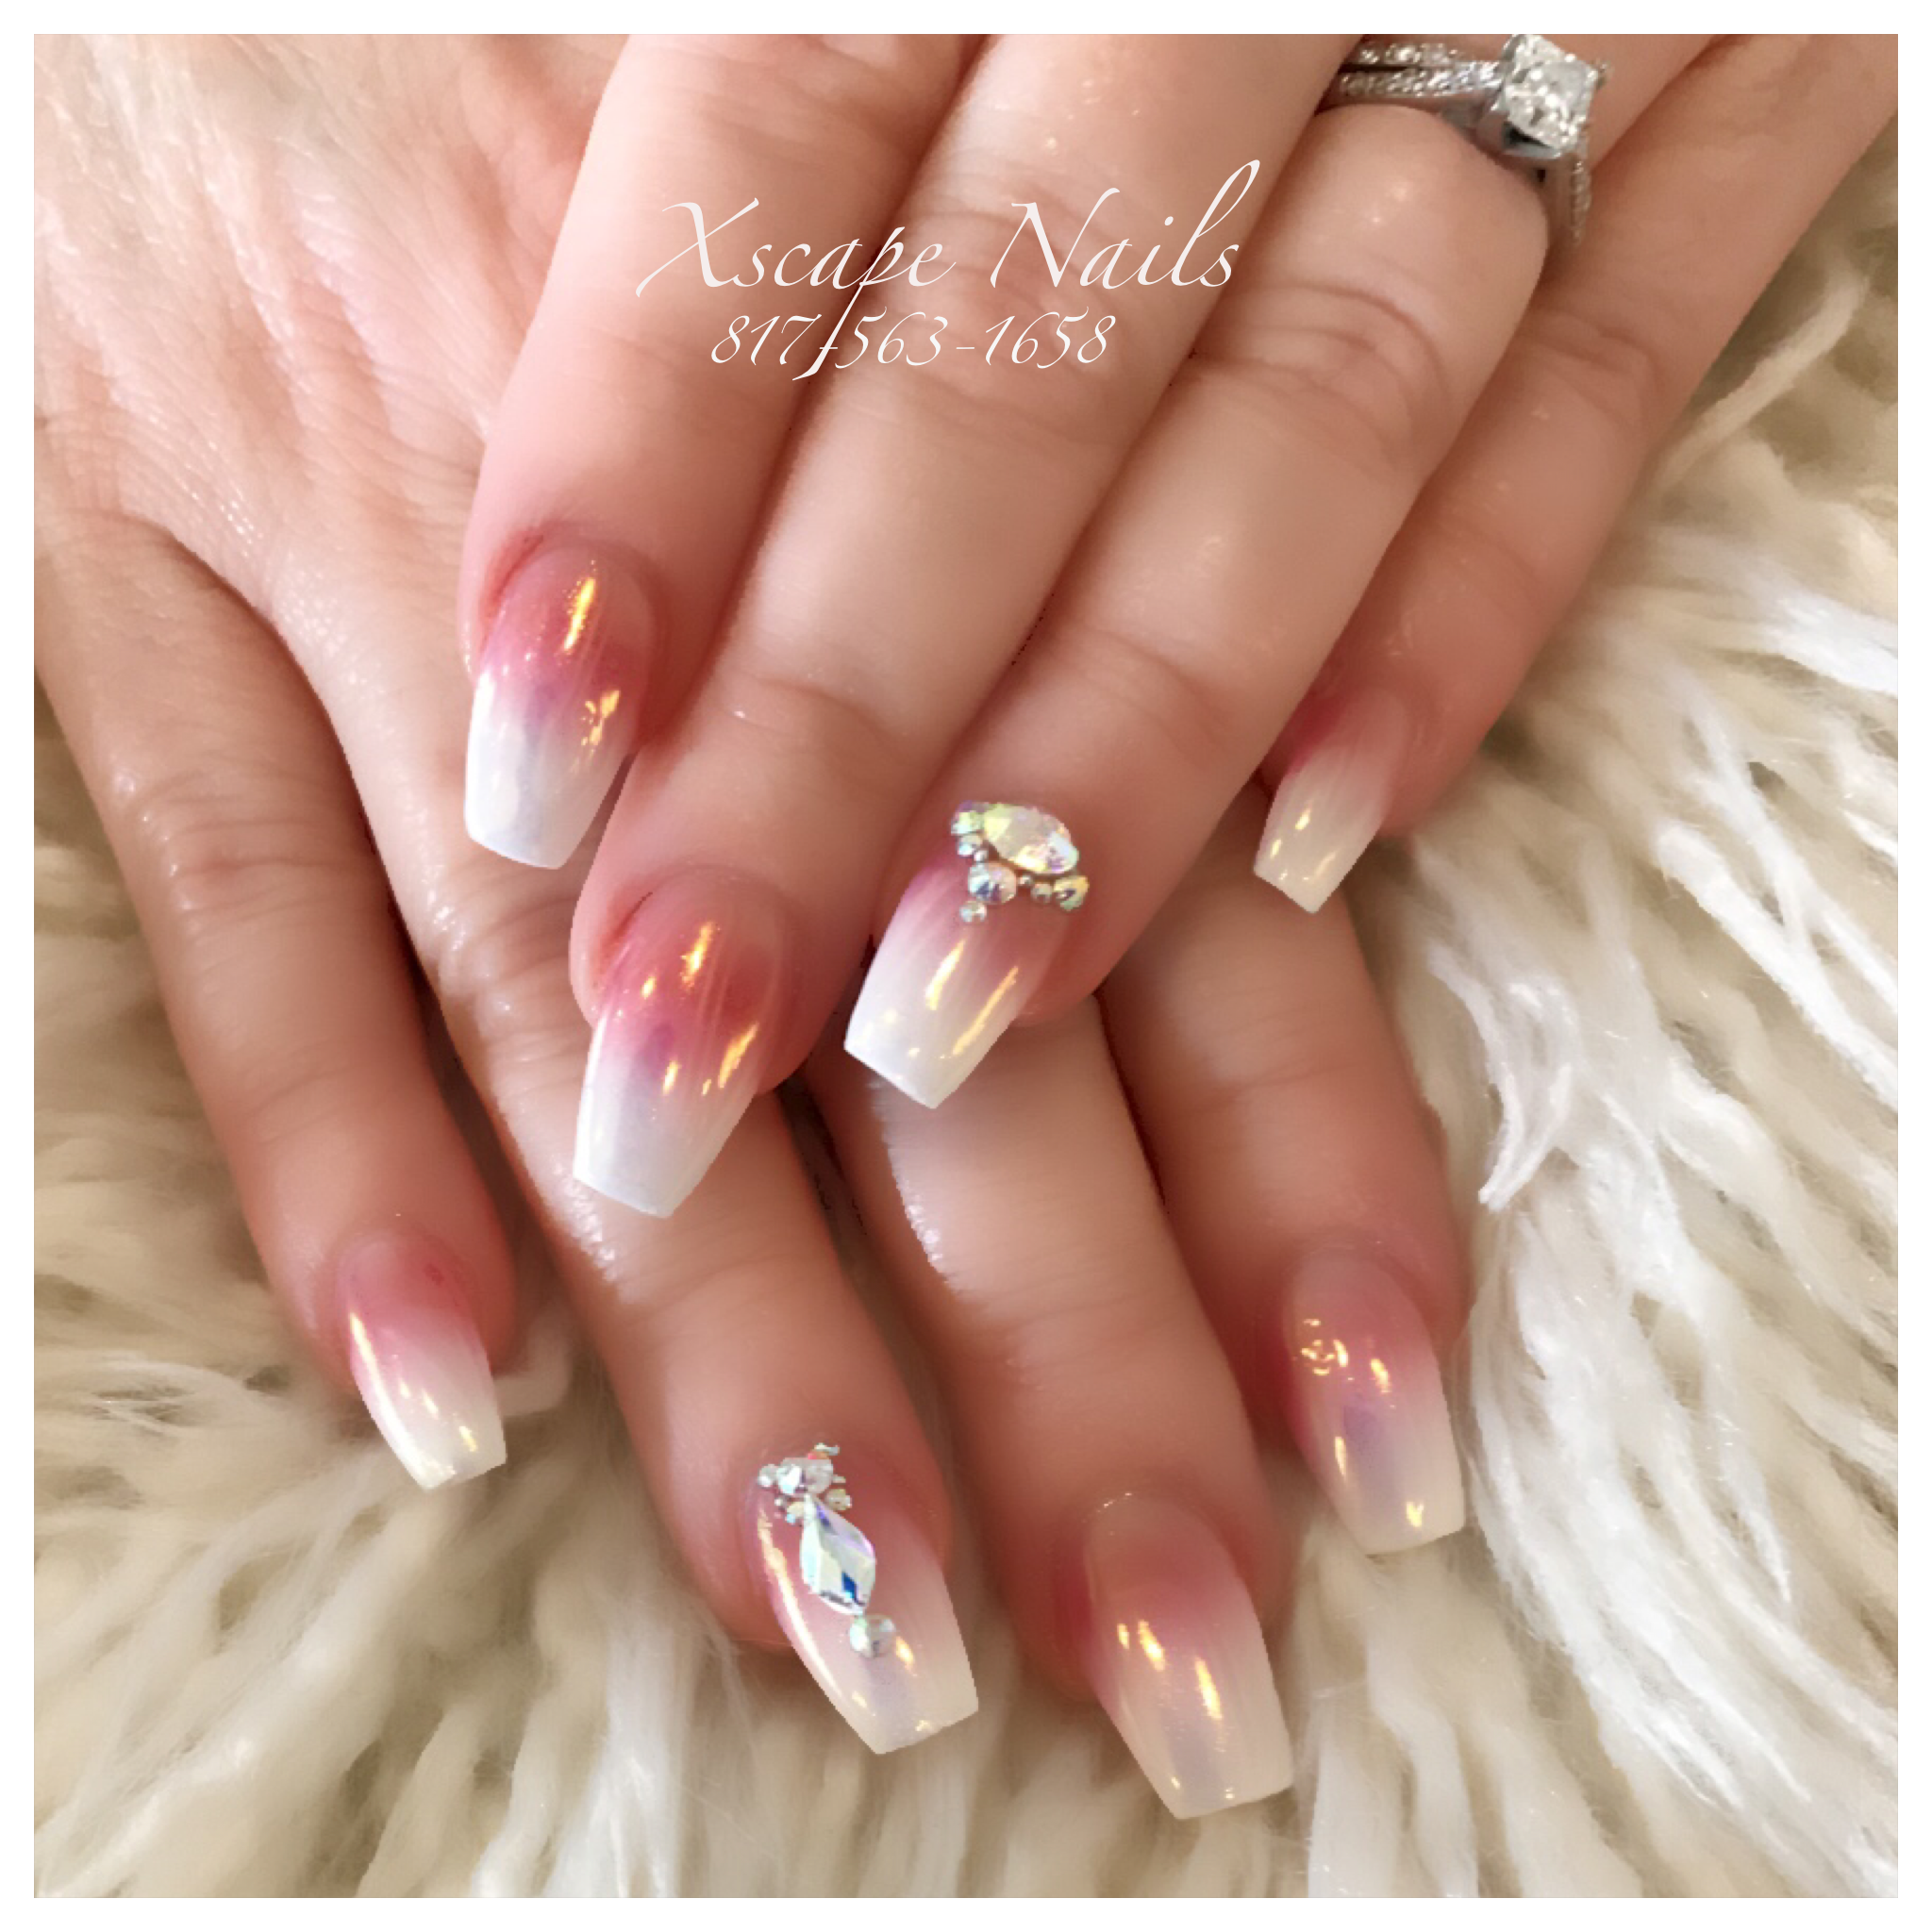 Ombr nails chrome nails cute nails designs pinterest ombr nails chrome nails prinsesfo Image collections